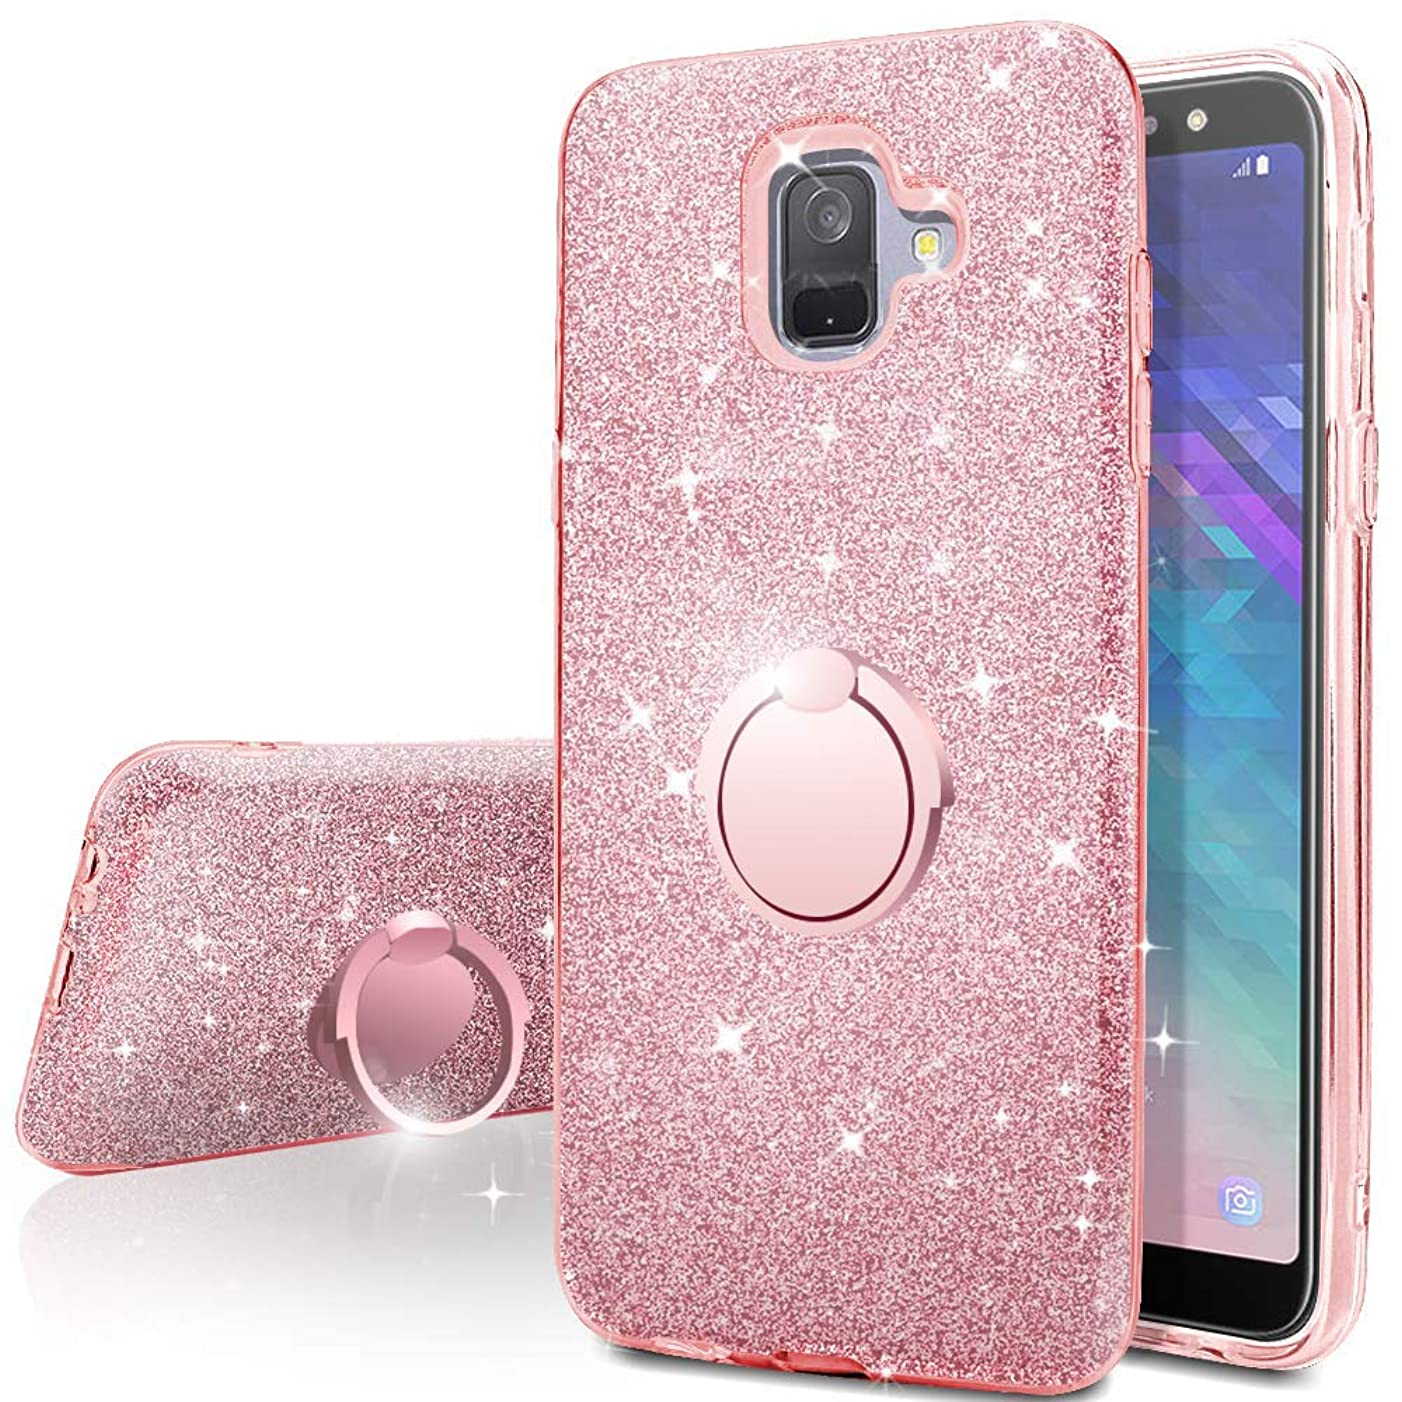 Galaxy A6 2018 Case,Silverback Girls Bling Glitter Sparkle Cute Phone Case with 360 Rotating Ring Stand, Soft TPU Outer Cover + Hard PC Inner Shell Skin for Samsung Galaxy A6 2018 -Rose Gold